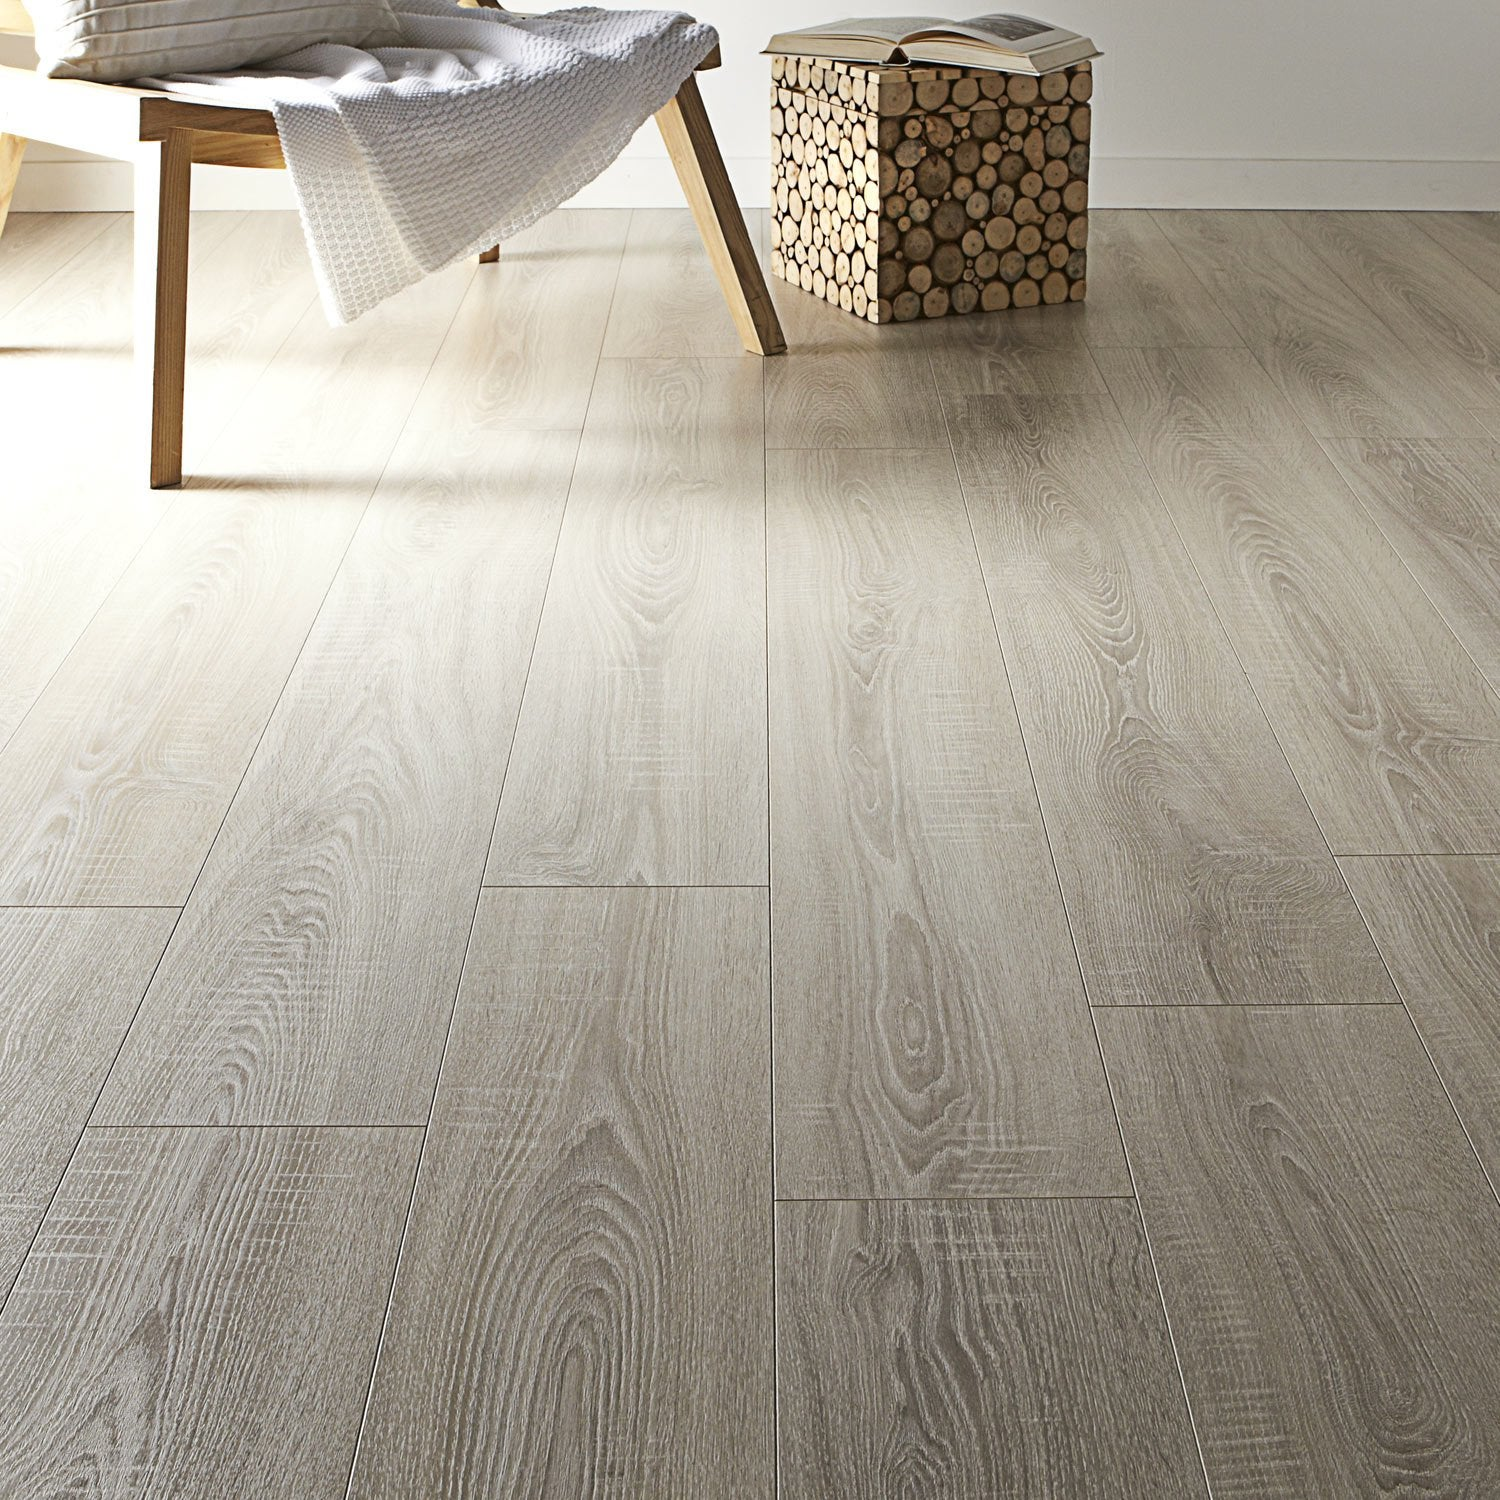 sol stratifi effet chne trianon ep12 mm artens plus 12 leroy merlin - Parquet Clipsable Leroy Merlin